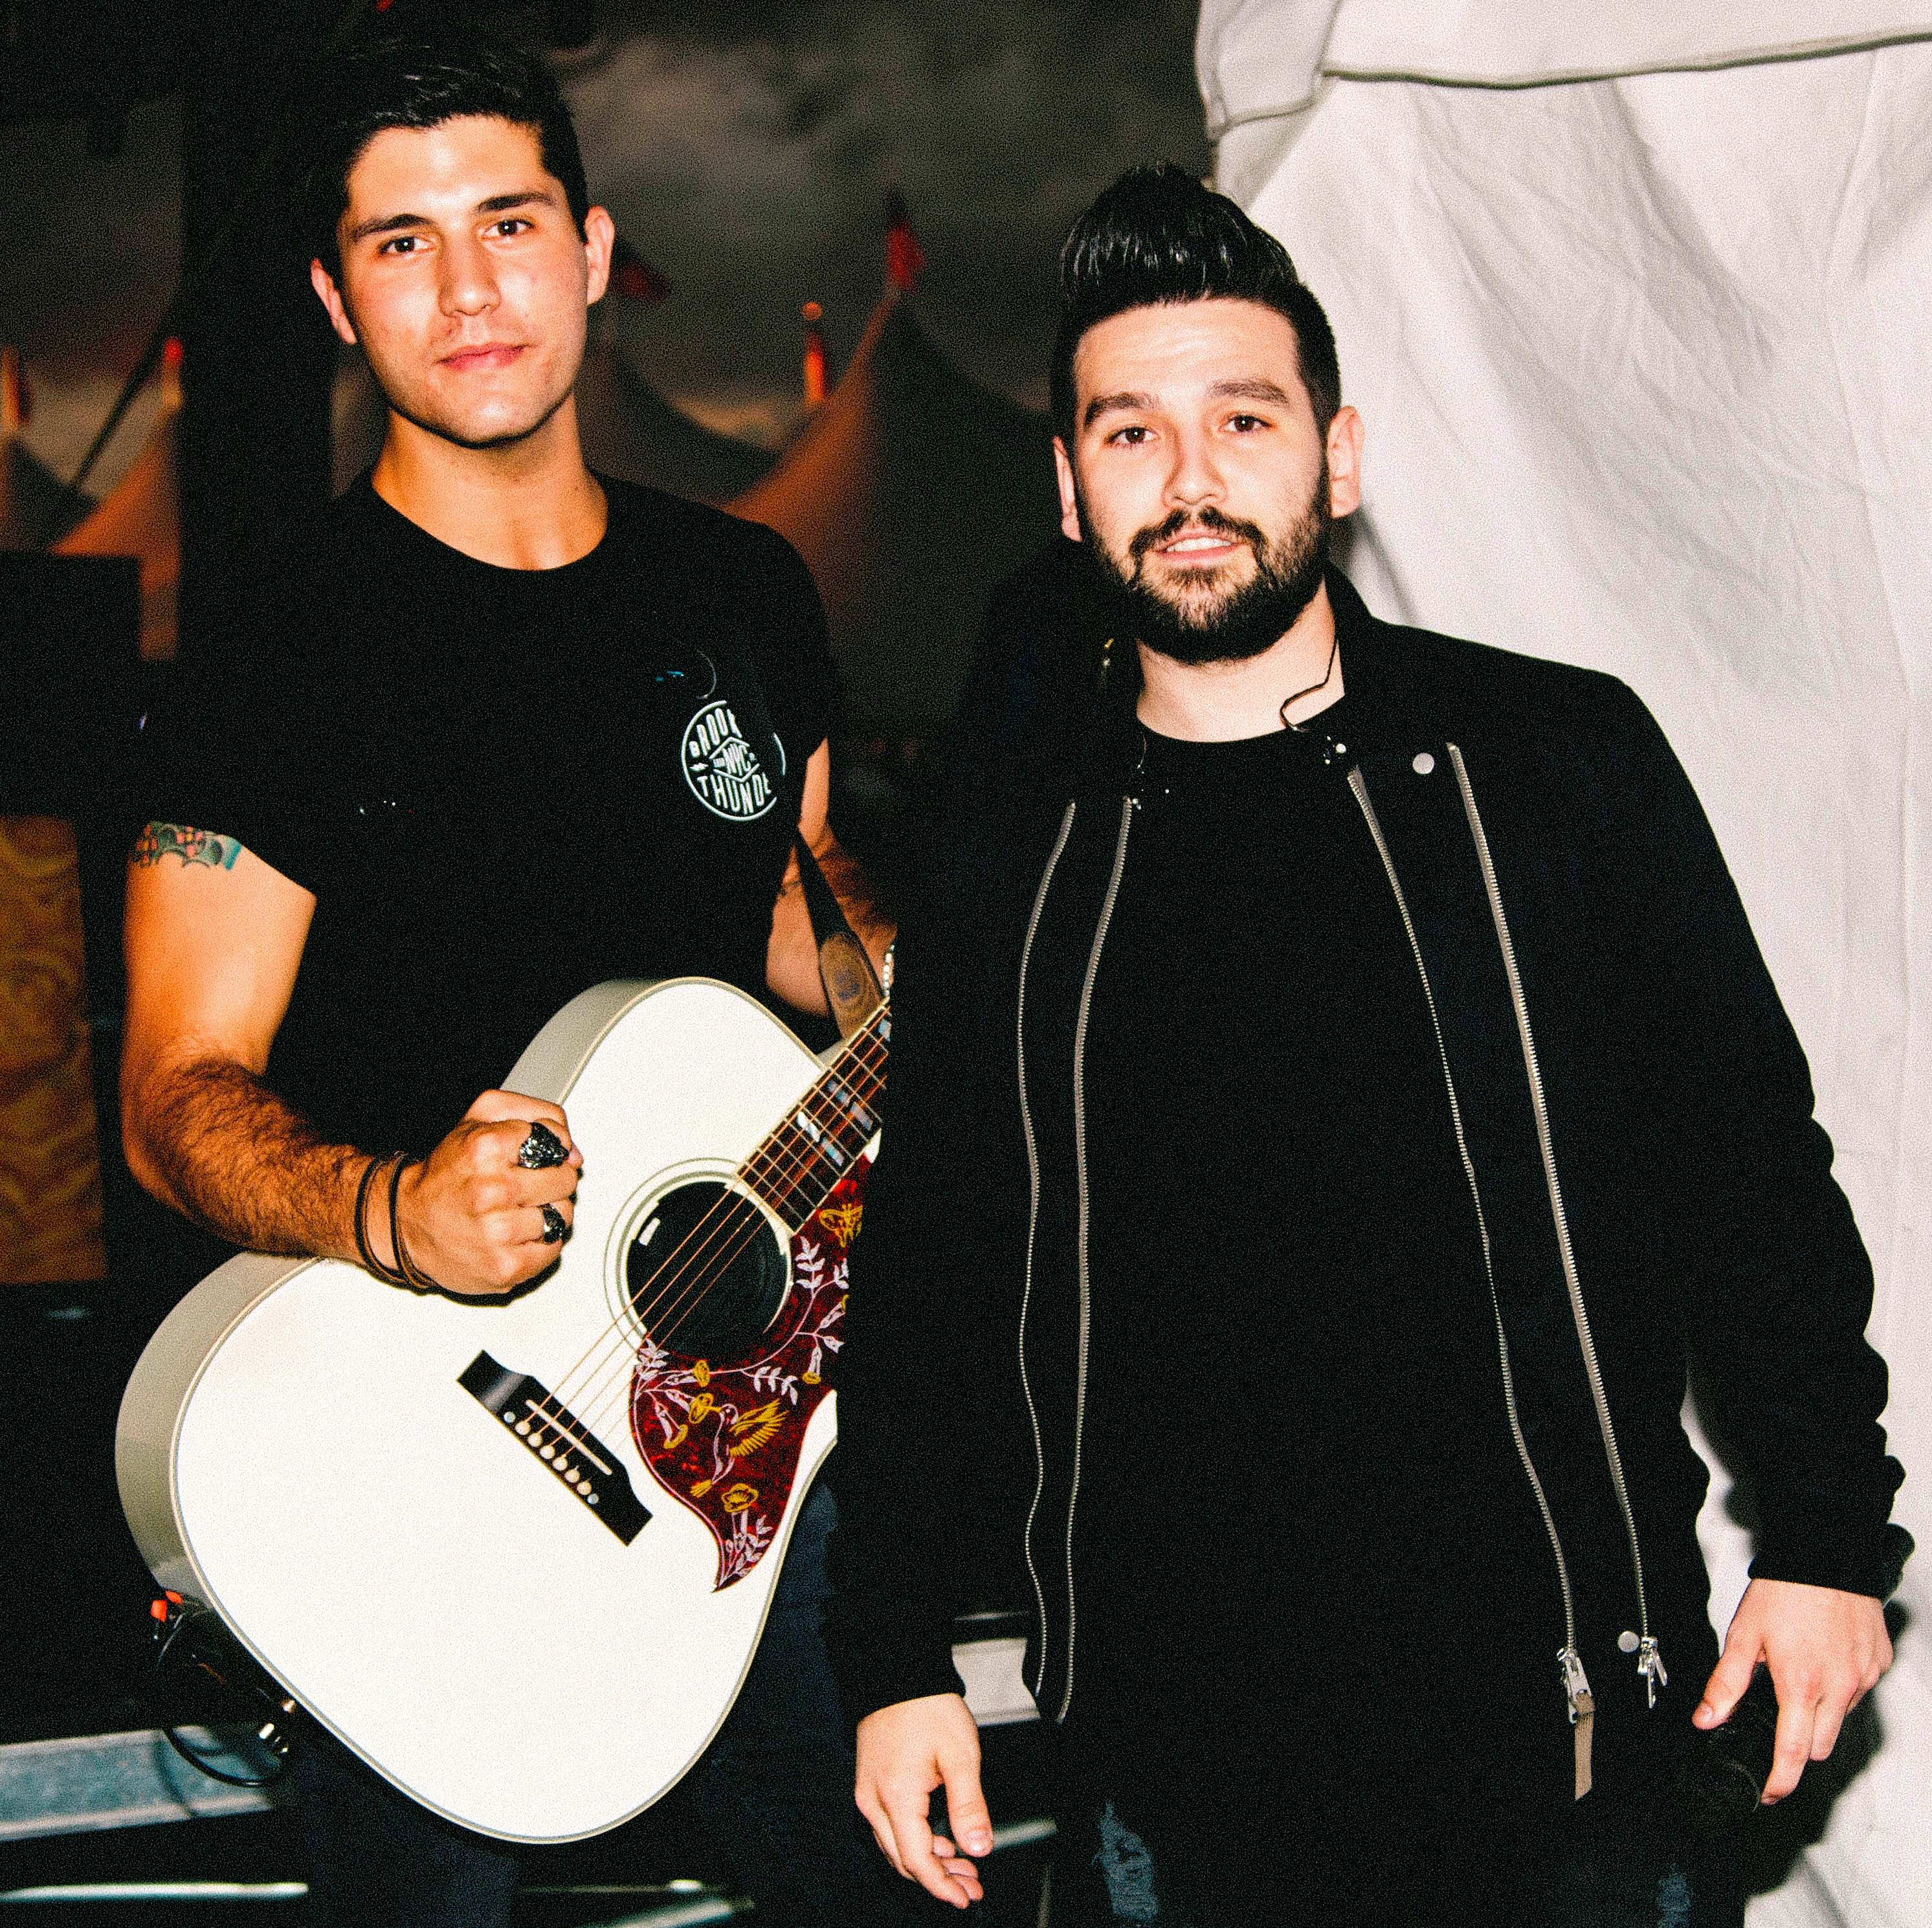 Country Stars Dan + Shay Headline Mercy NWA Charity Ball